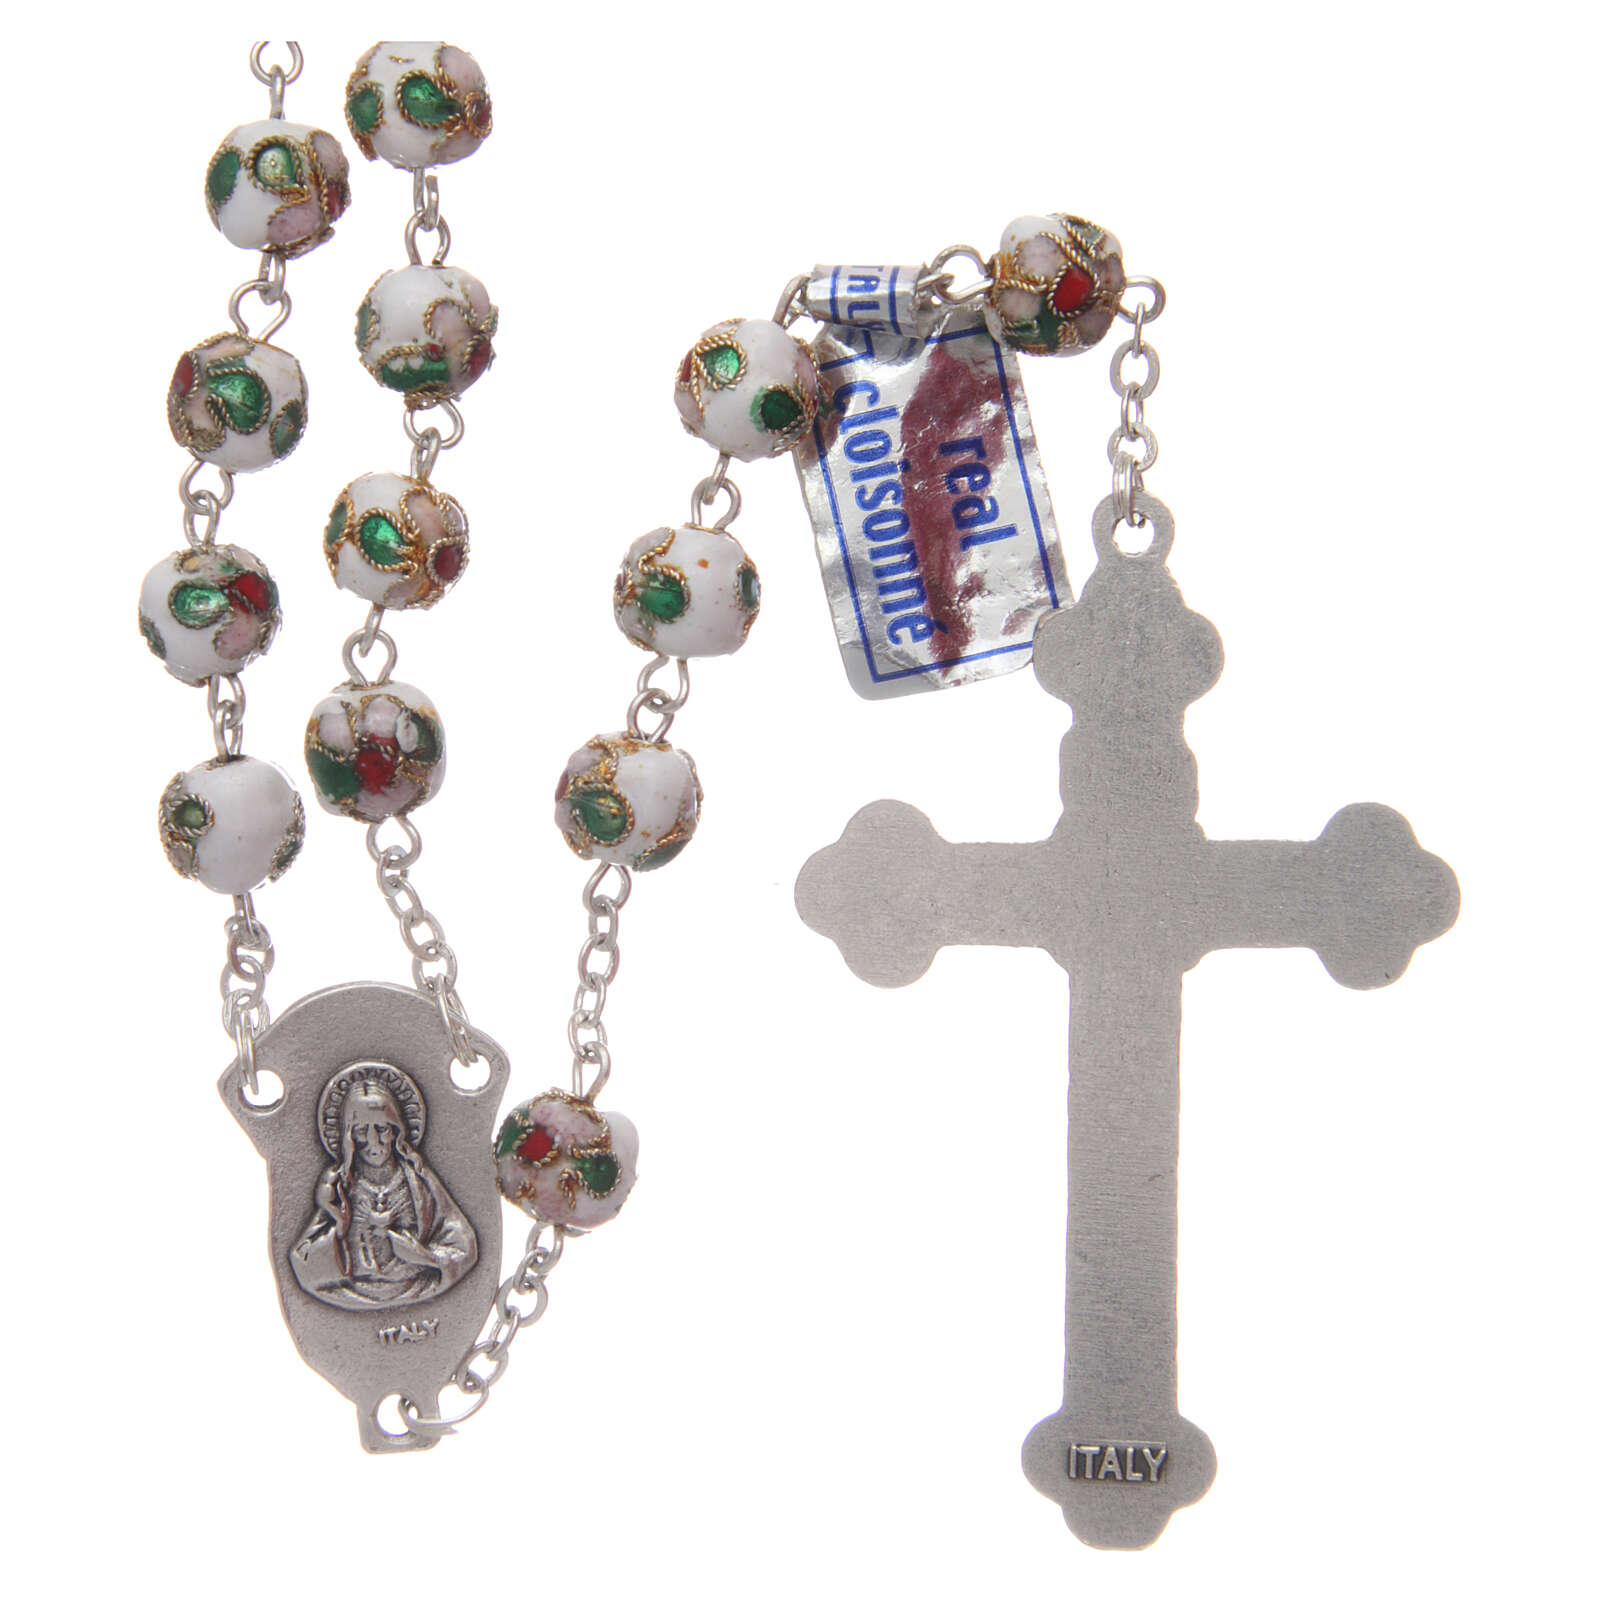 Cloisonné rosary white round beads 7 mm 4